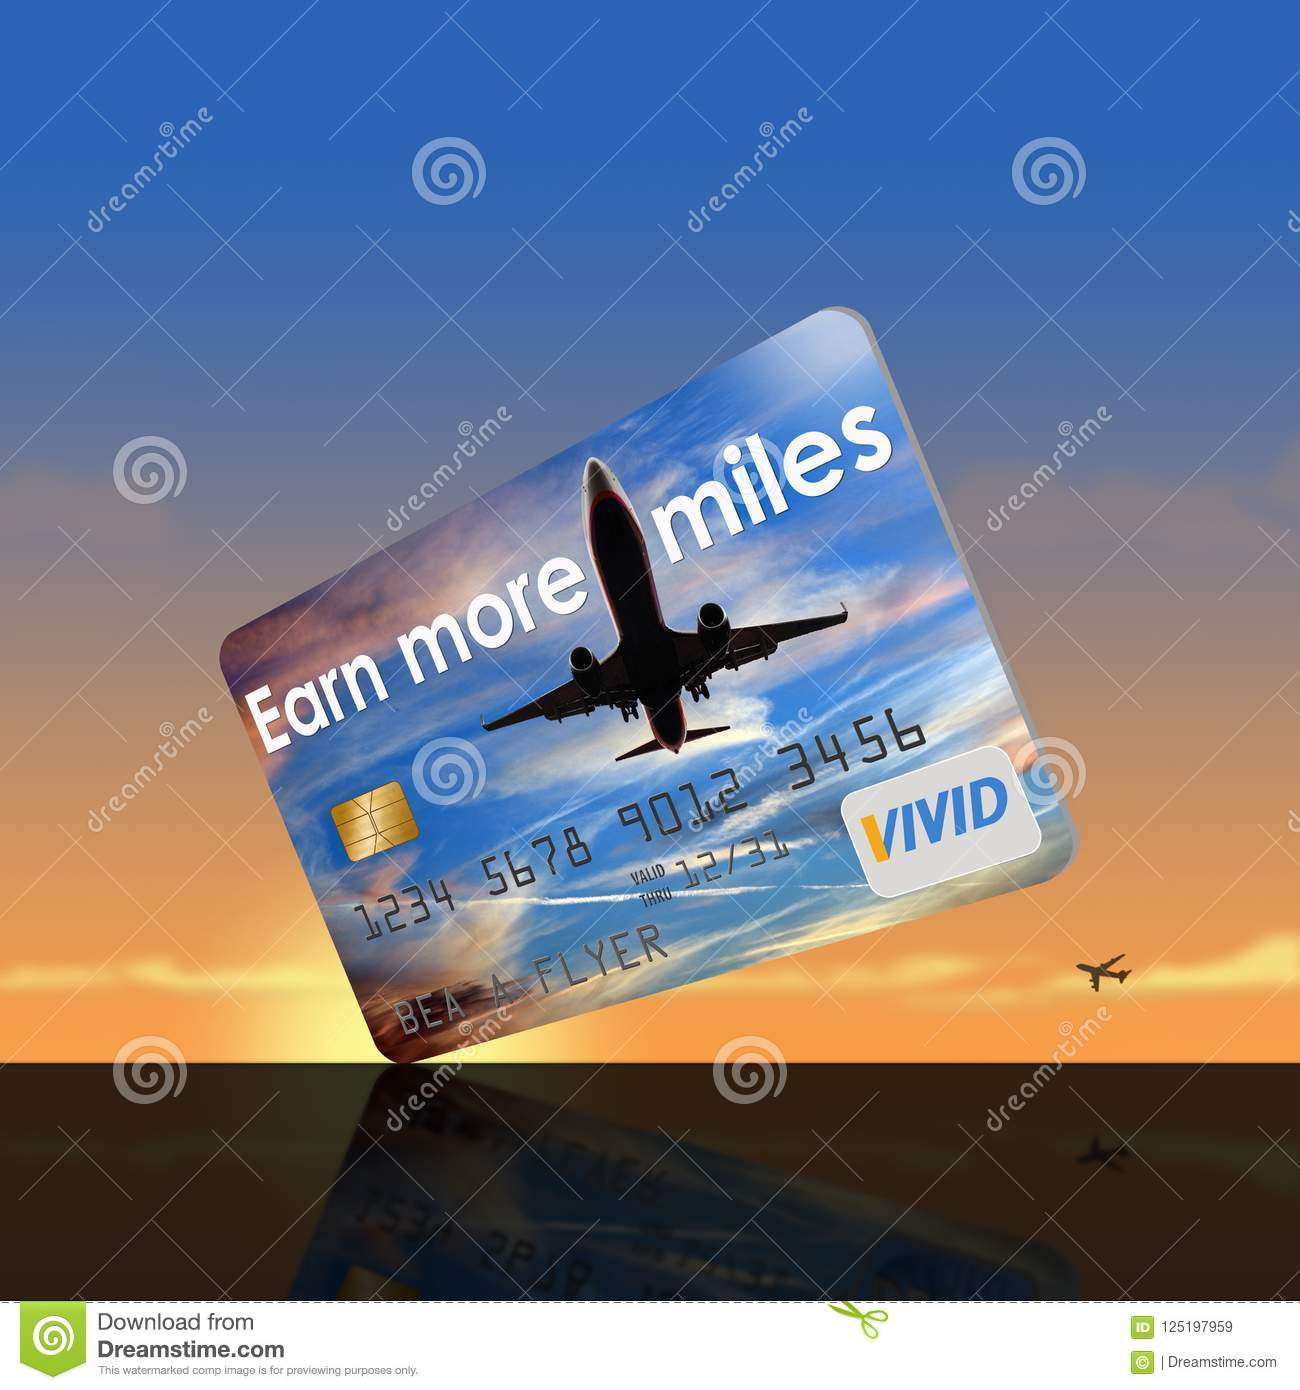 Miles And More Points Credit Card That Rewards Users With Airline Miles And Points